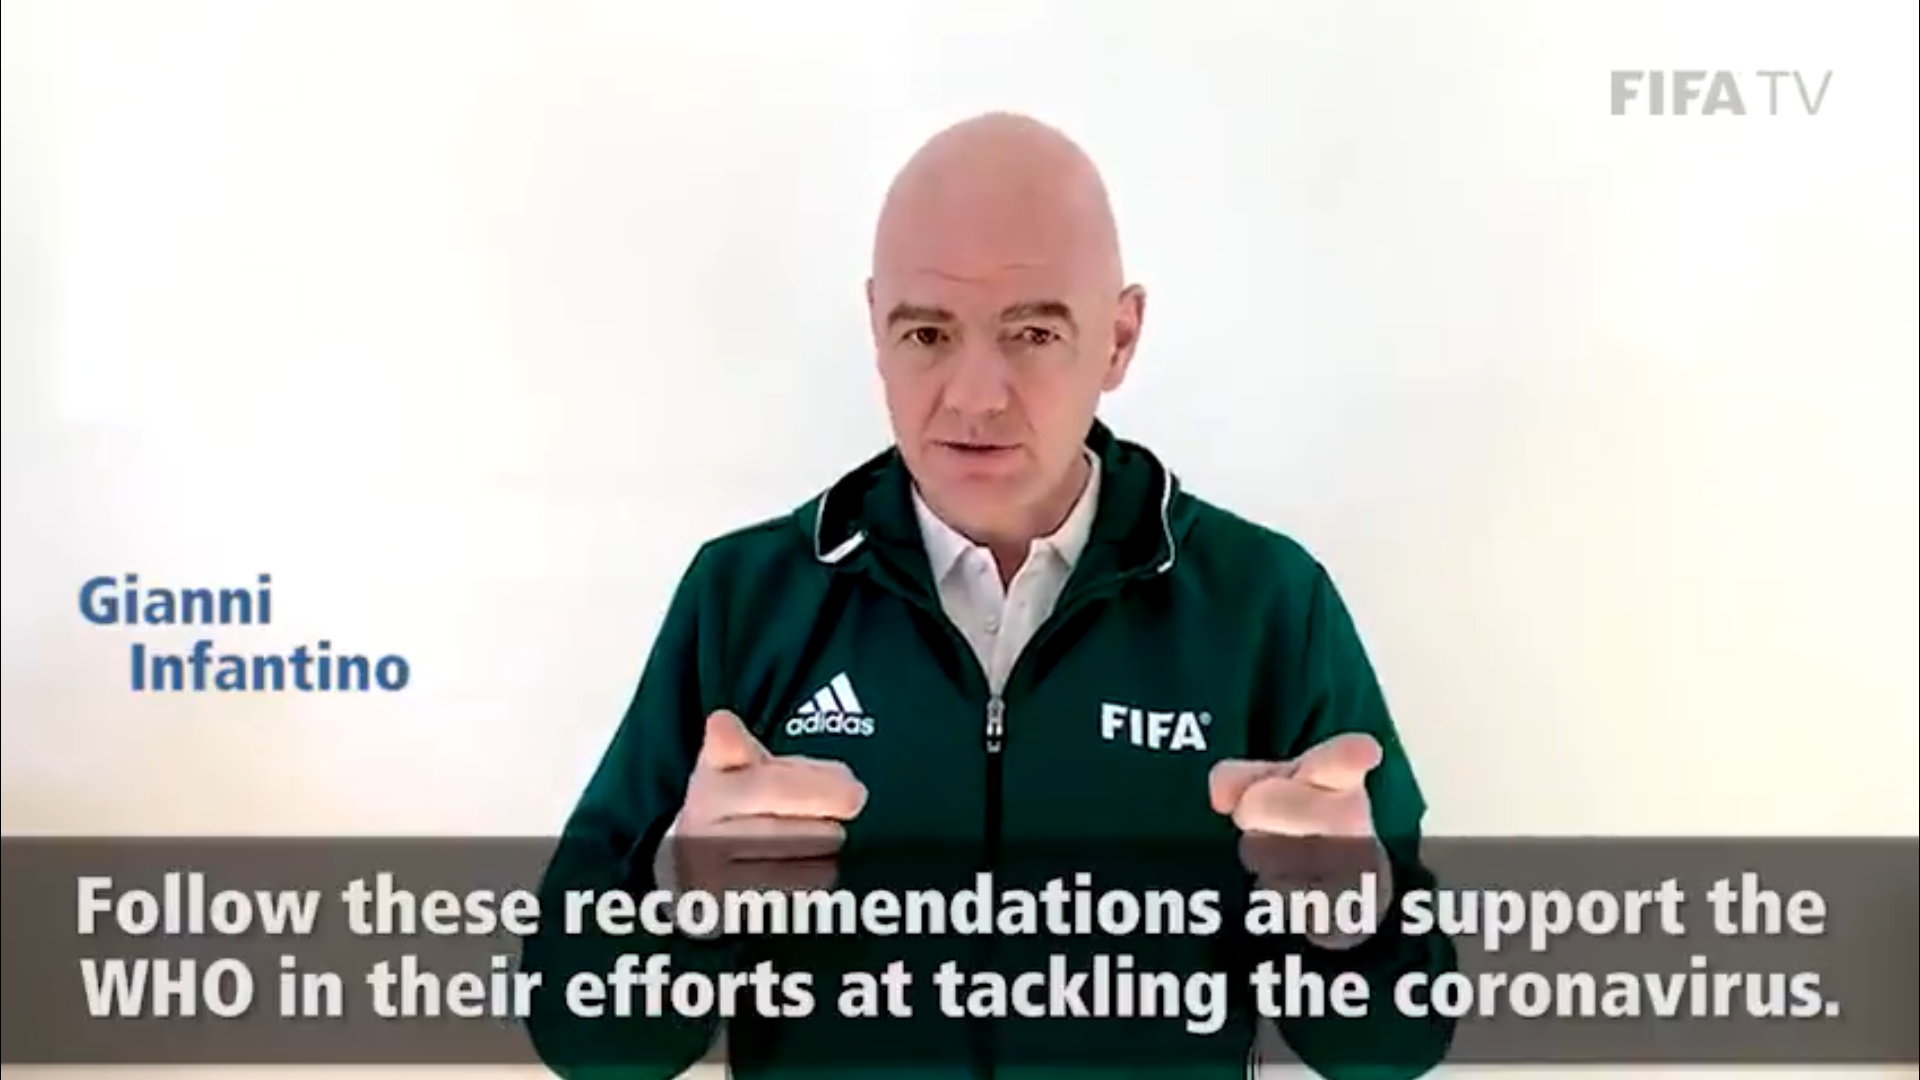 FIFA release video advising people on WHO steps to combat coronavirus